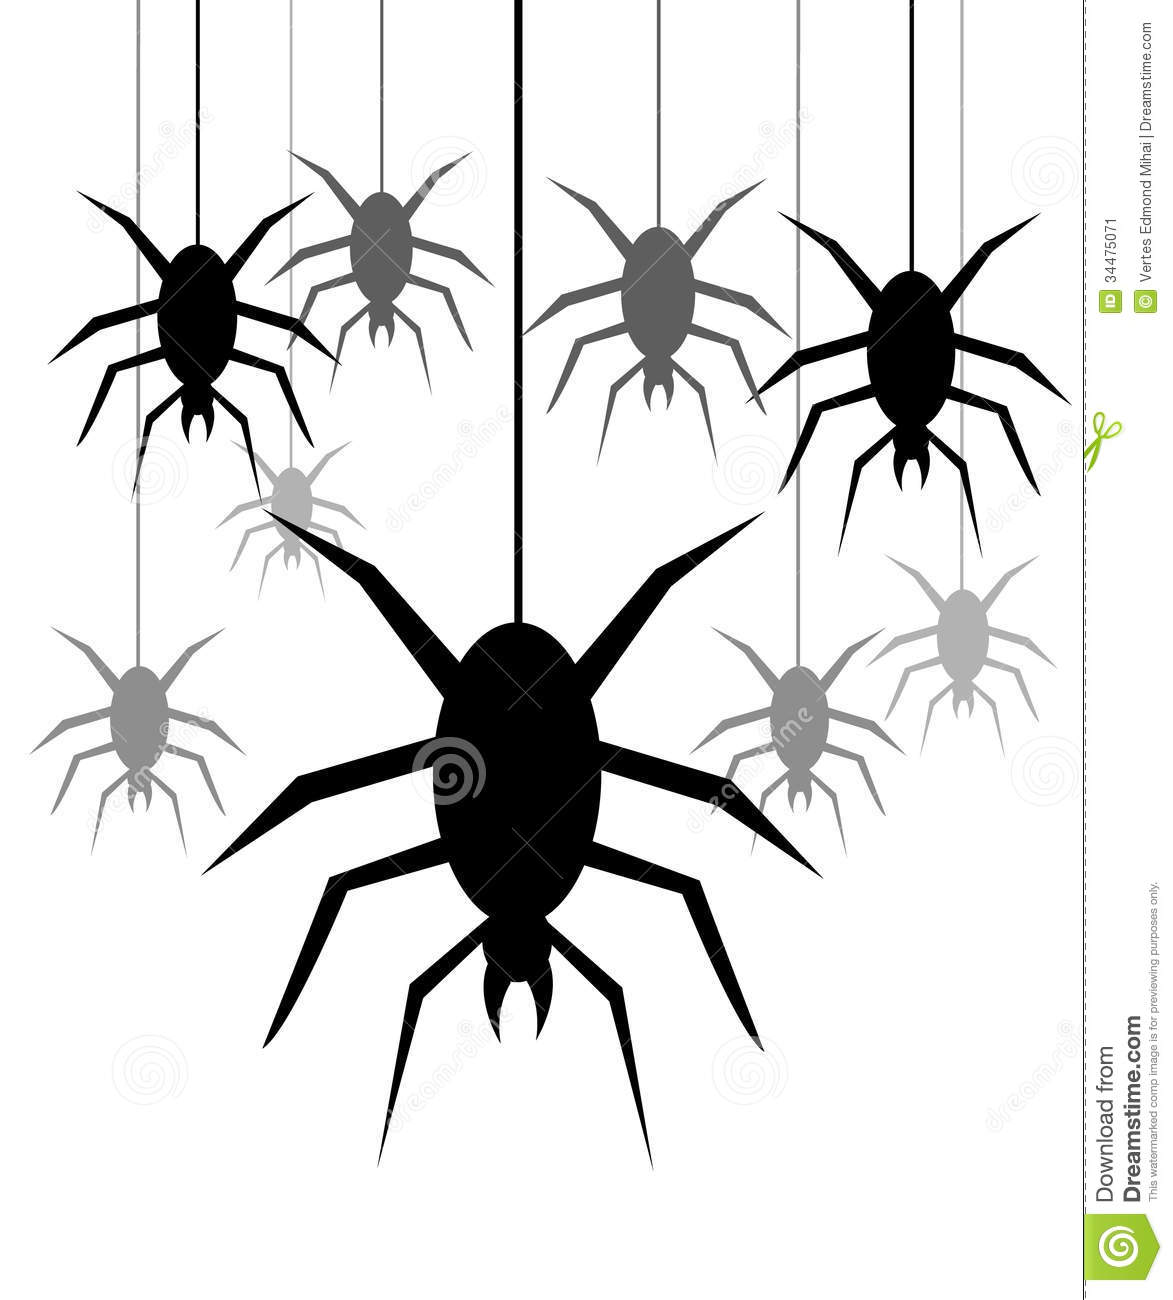 Spiders hanging on a web stock vector. Illustration of